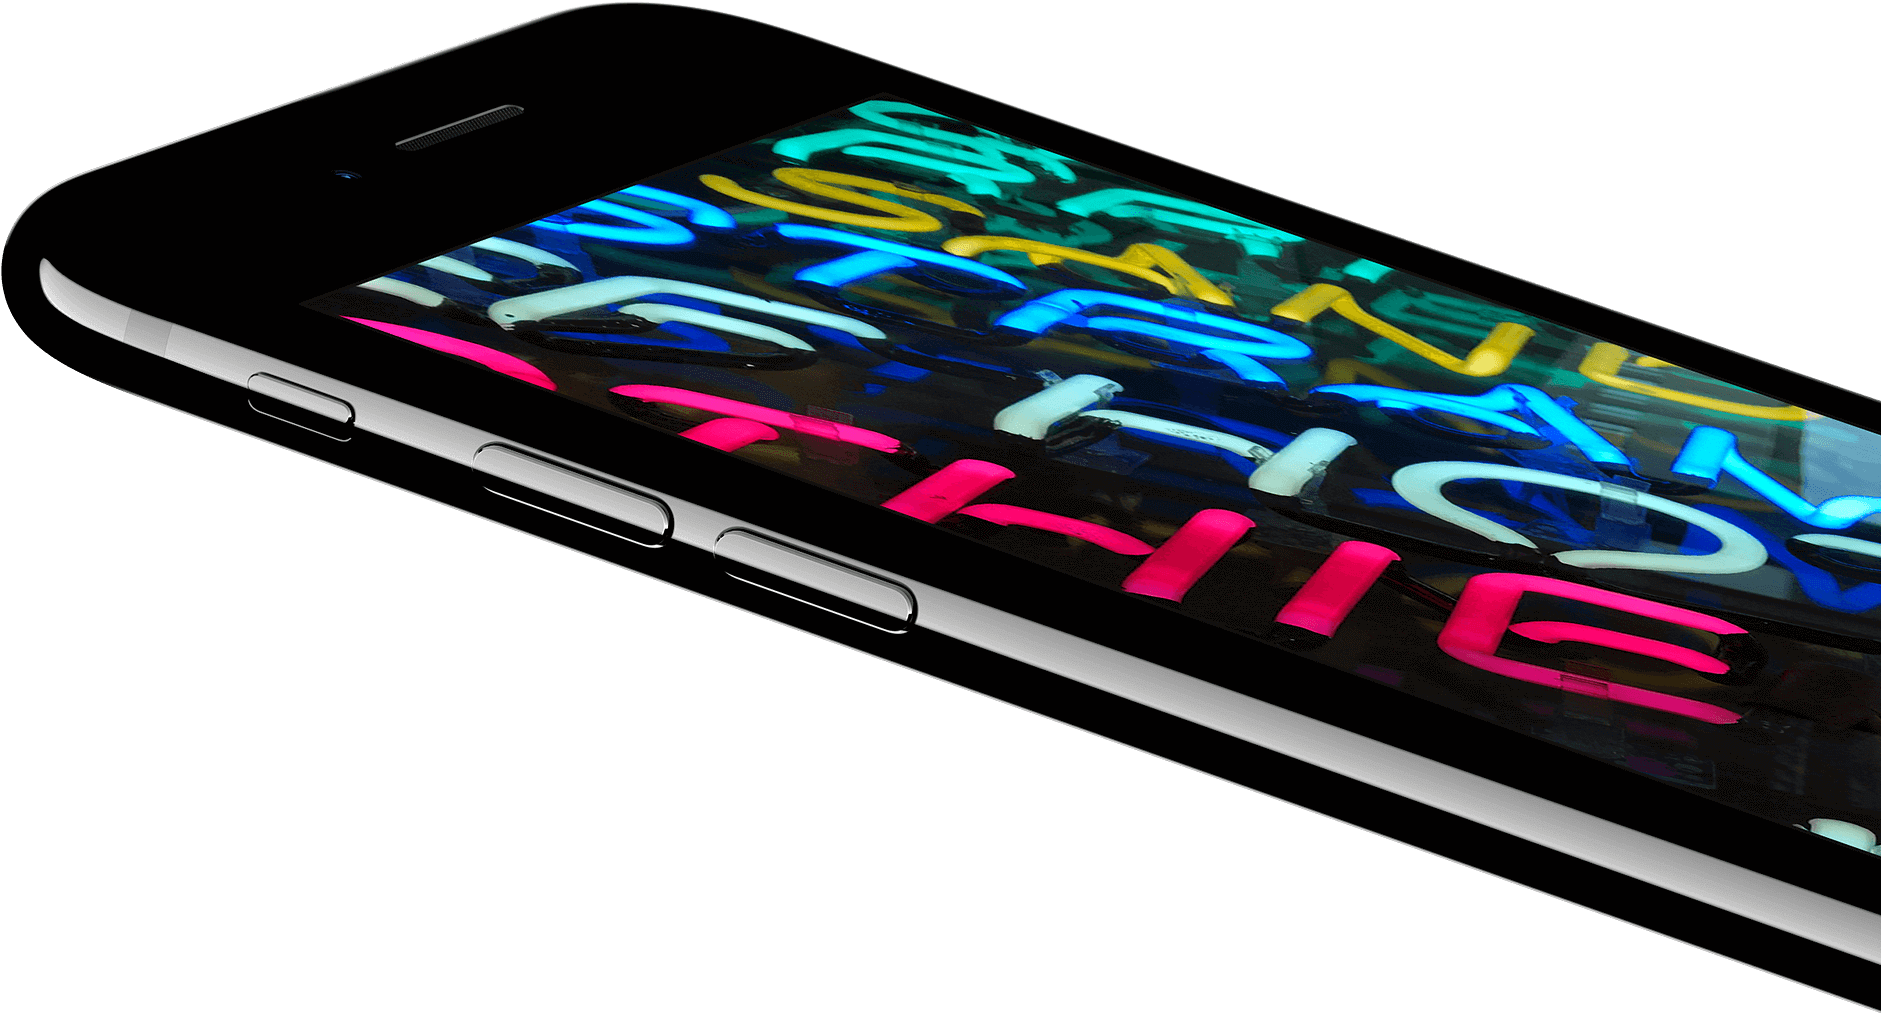 Mobile device clipart free library Iphone 7 Clipart Mobile Device - Iphone 7 Wide Colour Gamut ... free library